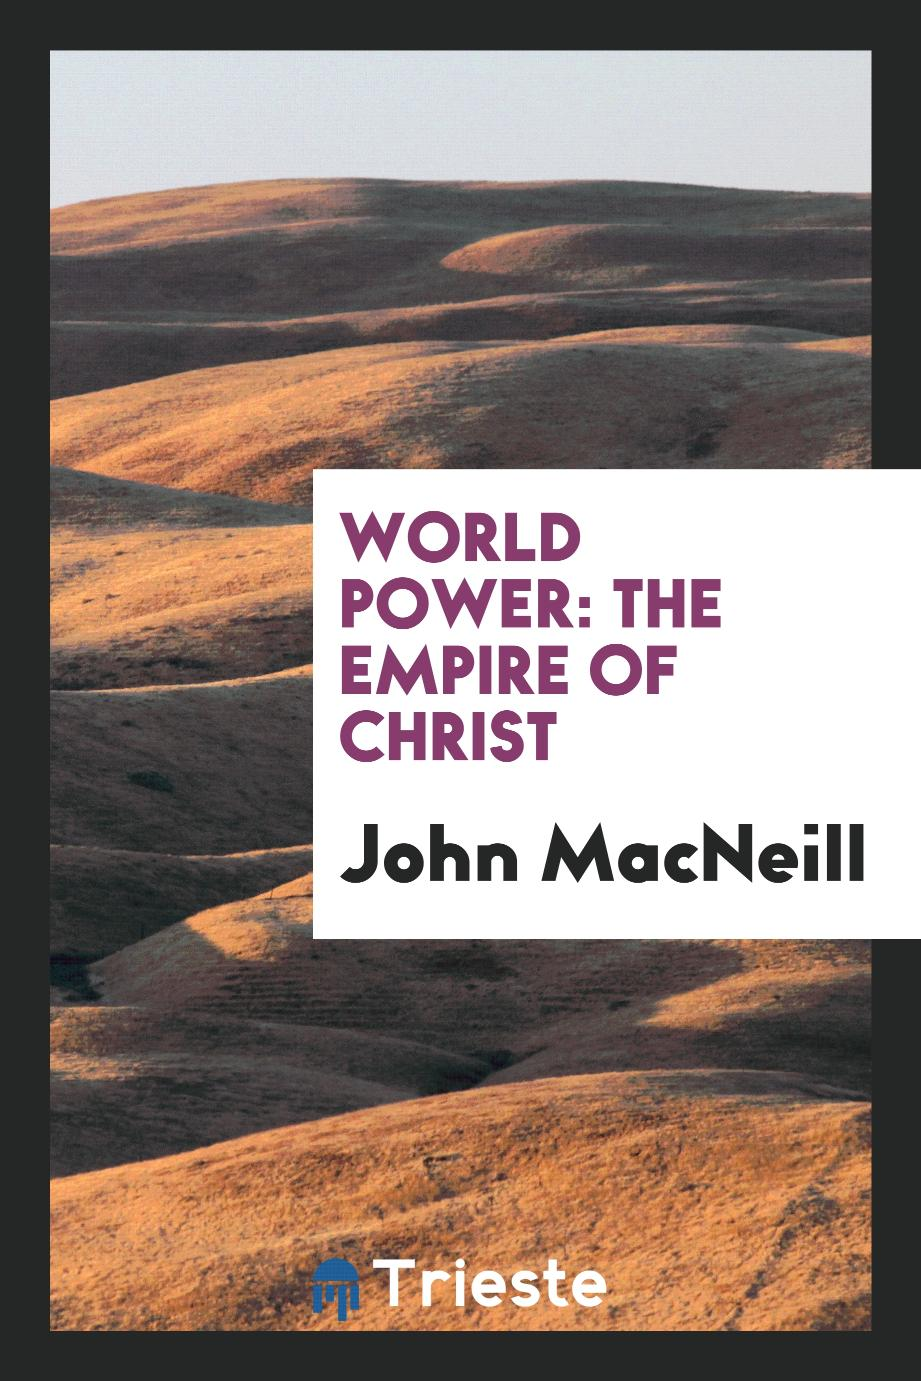 World Power: The Empire of Christ